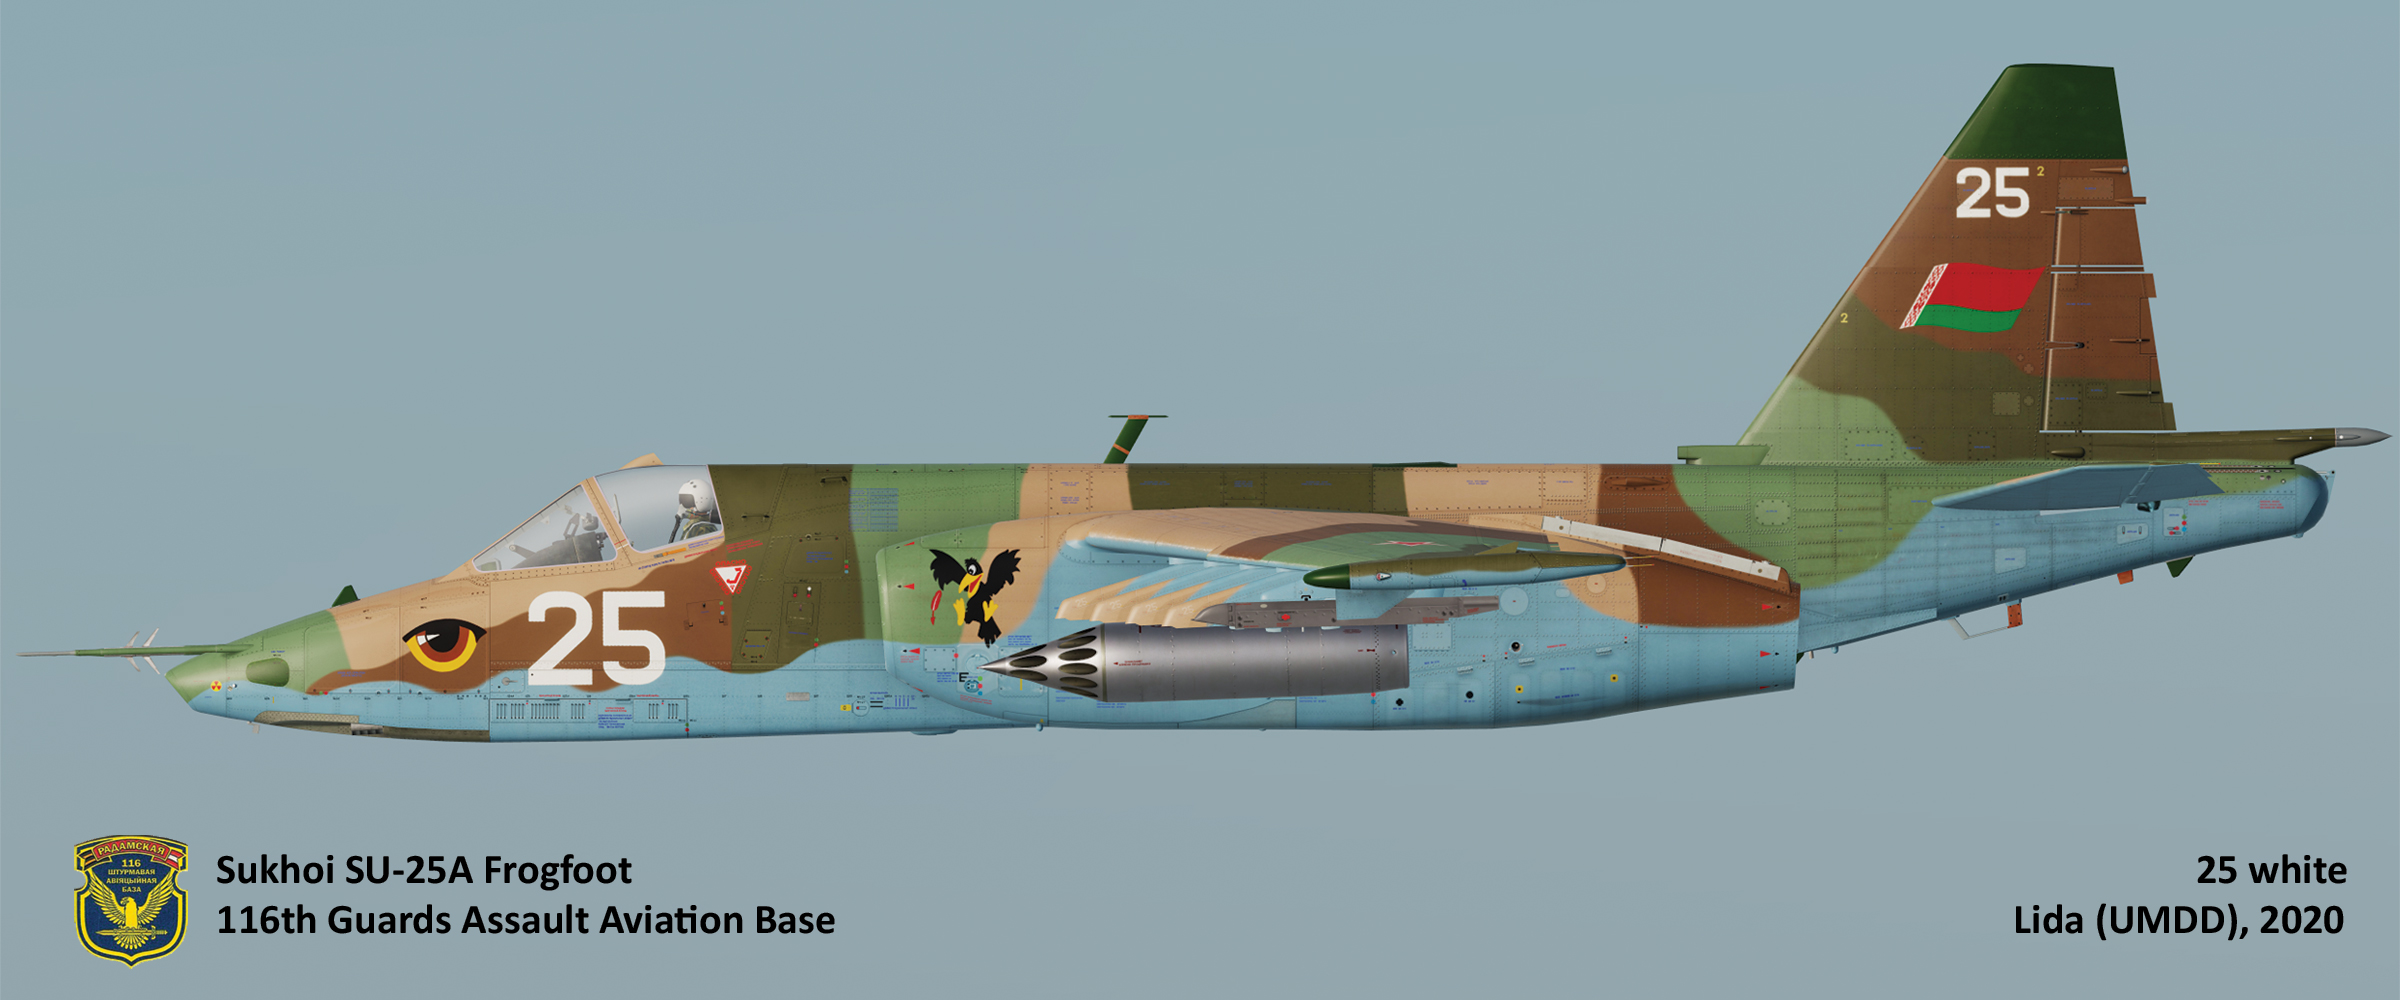 Su-25 Belarus Air Force